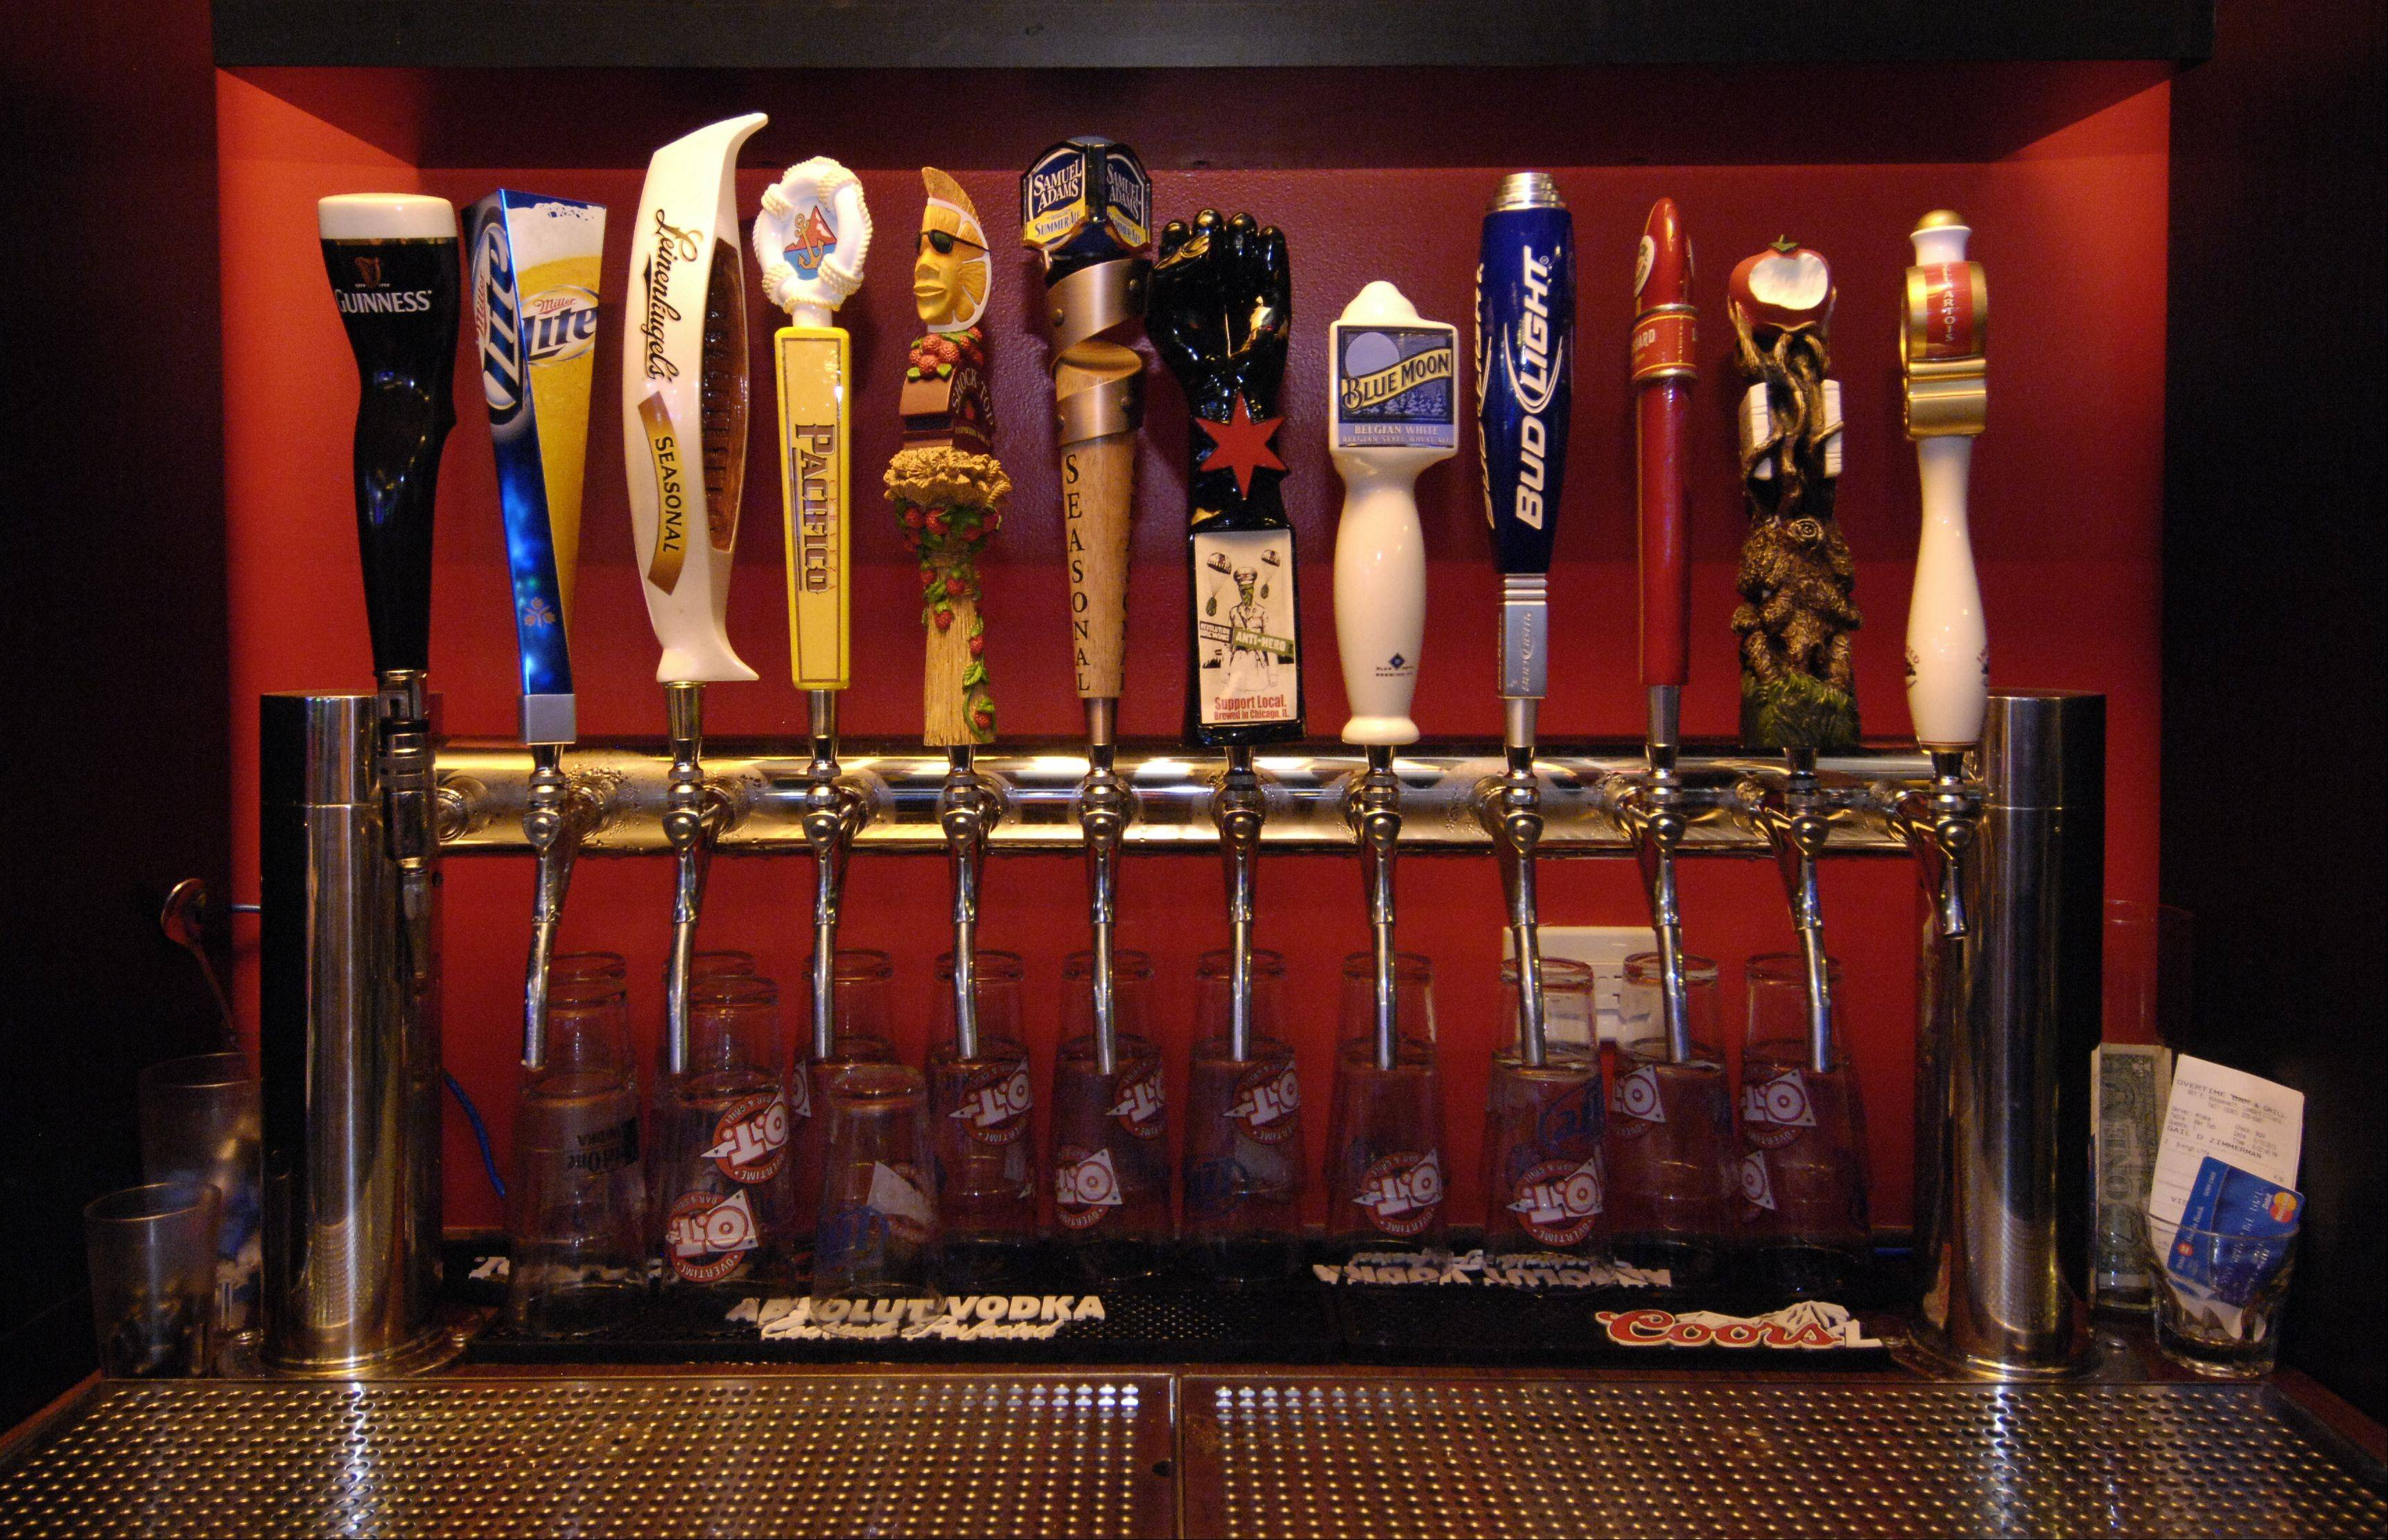 Overtime Bar & Grill has a selection of brews on tap.